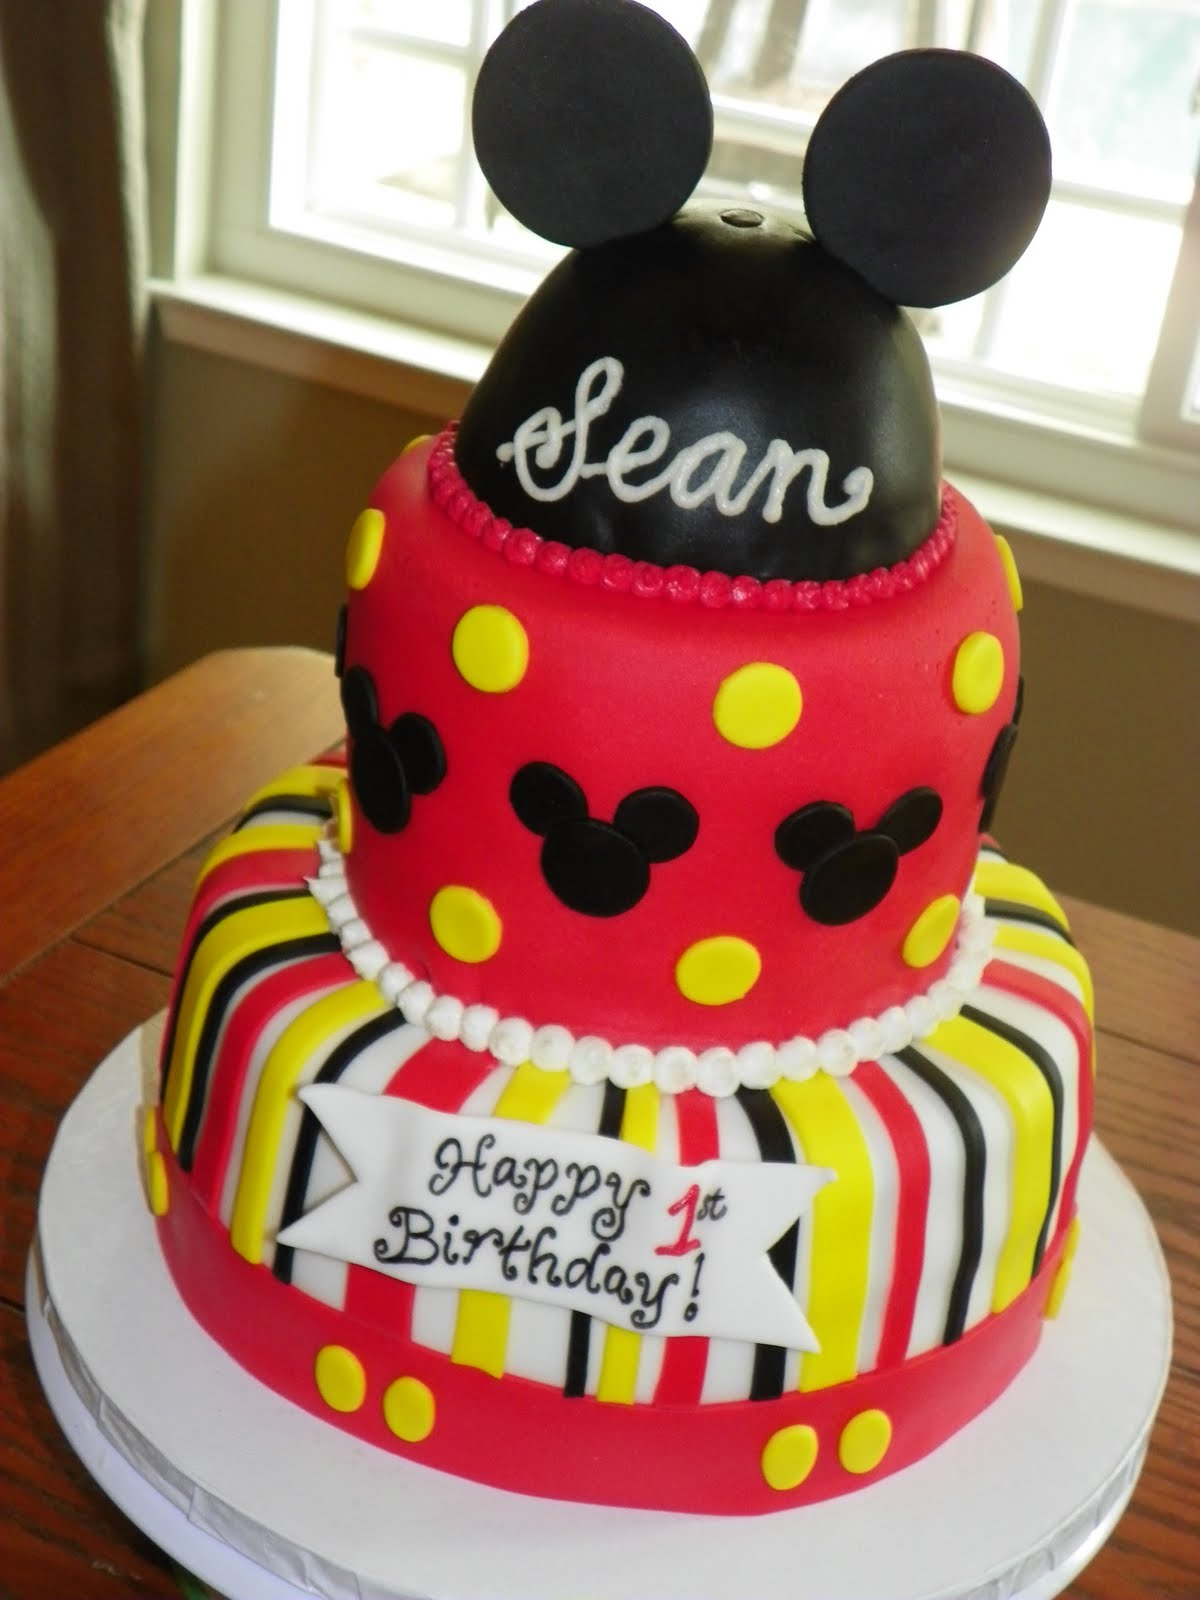 Birthday Cake Pictures Of Mickey Mouse : Plumeria Cake Studio: Mickey Mouse Birthday Cake